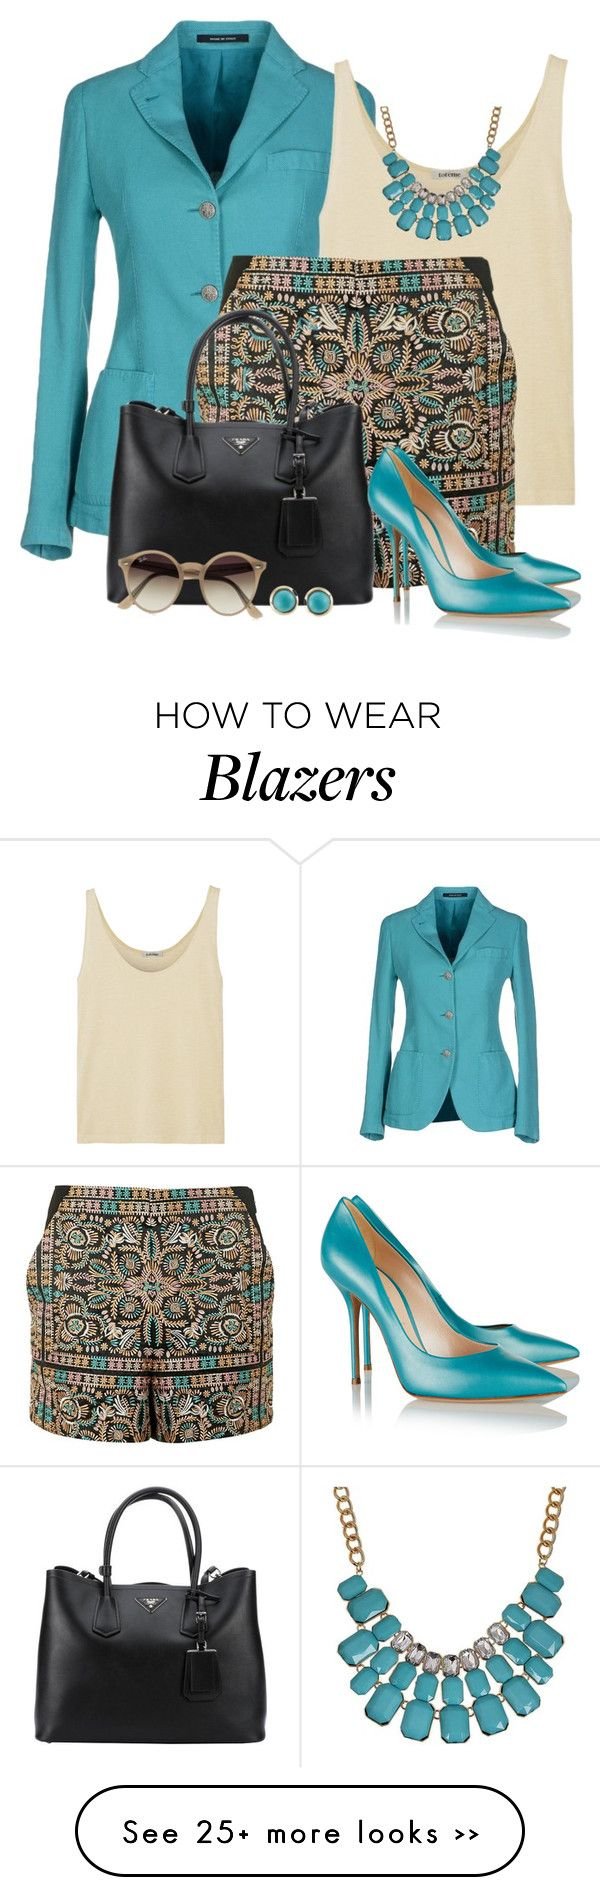 High Wasted Shorts and Blazer by brendariley-1 on Polyvore featuring Tagliatore, Totême, Topshop, Prada, Casadei, Ray-Ban and Laura Lee